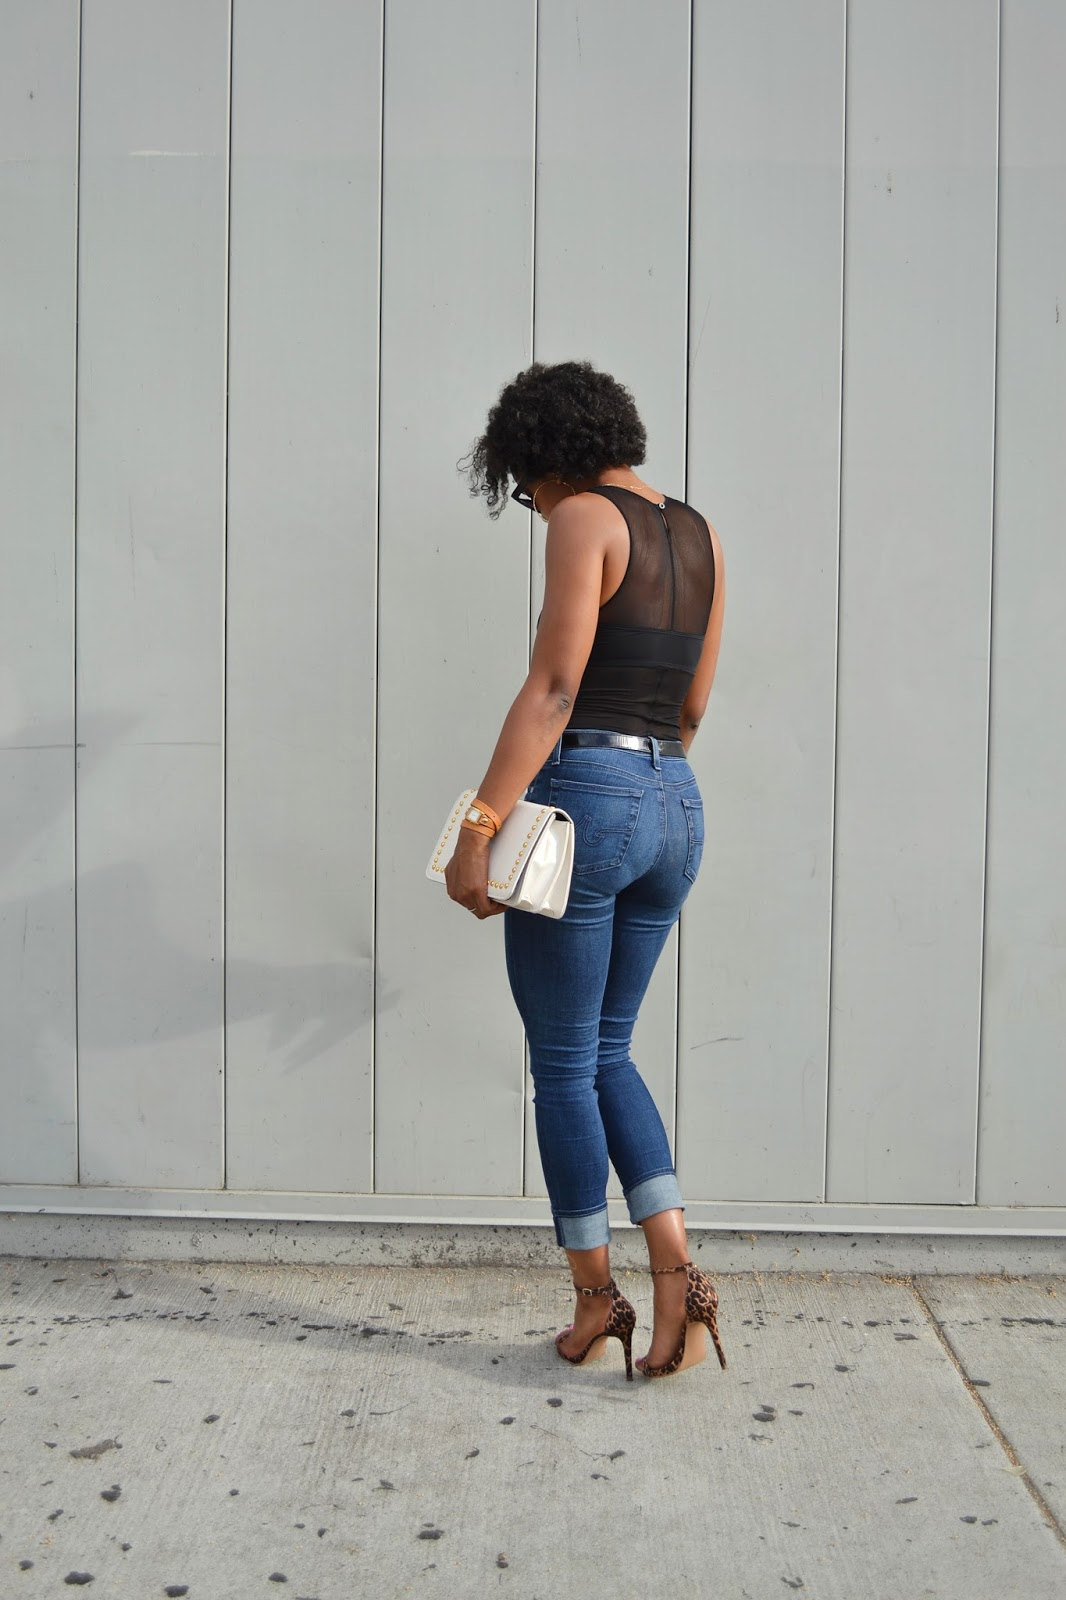 Wearing // H&M bodysuit, AG jeans, Abound heels, H&M men's sunglasses, La Mer Collections watch, Vintage bag, M.A.C. Ruby Woo lipstick